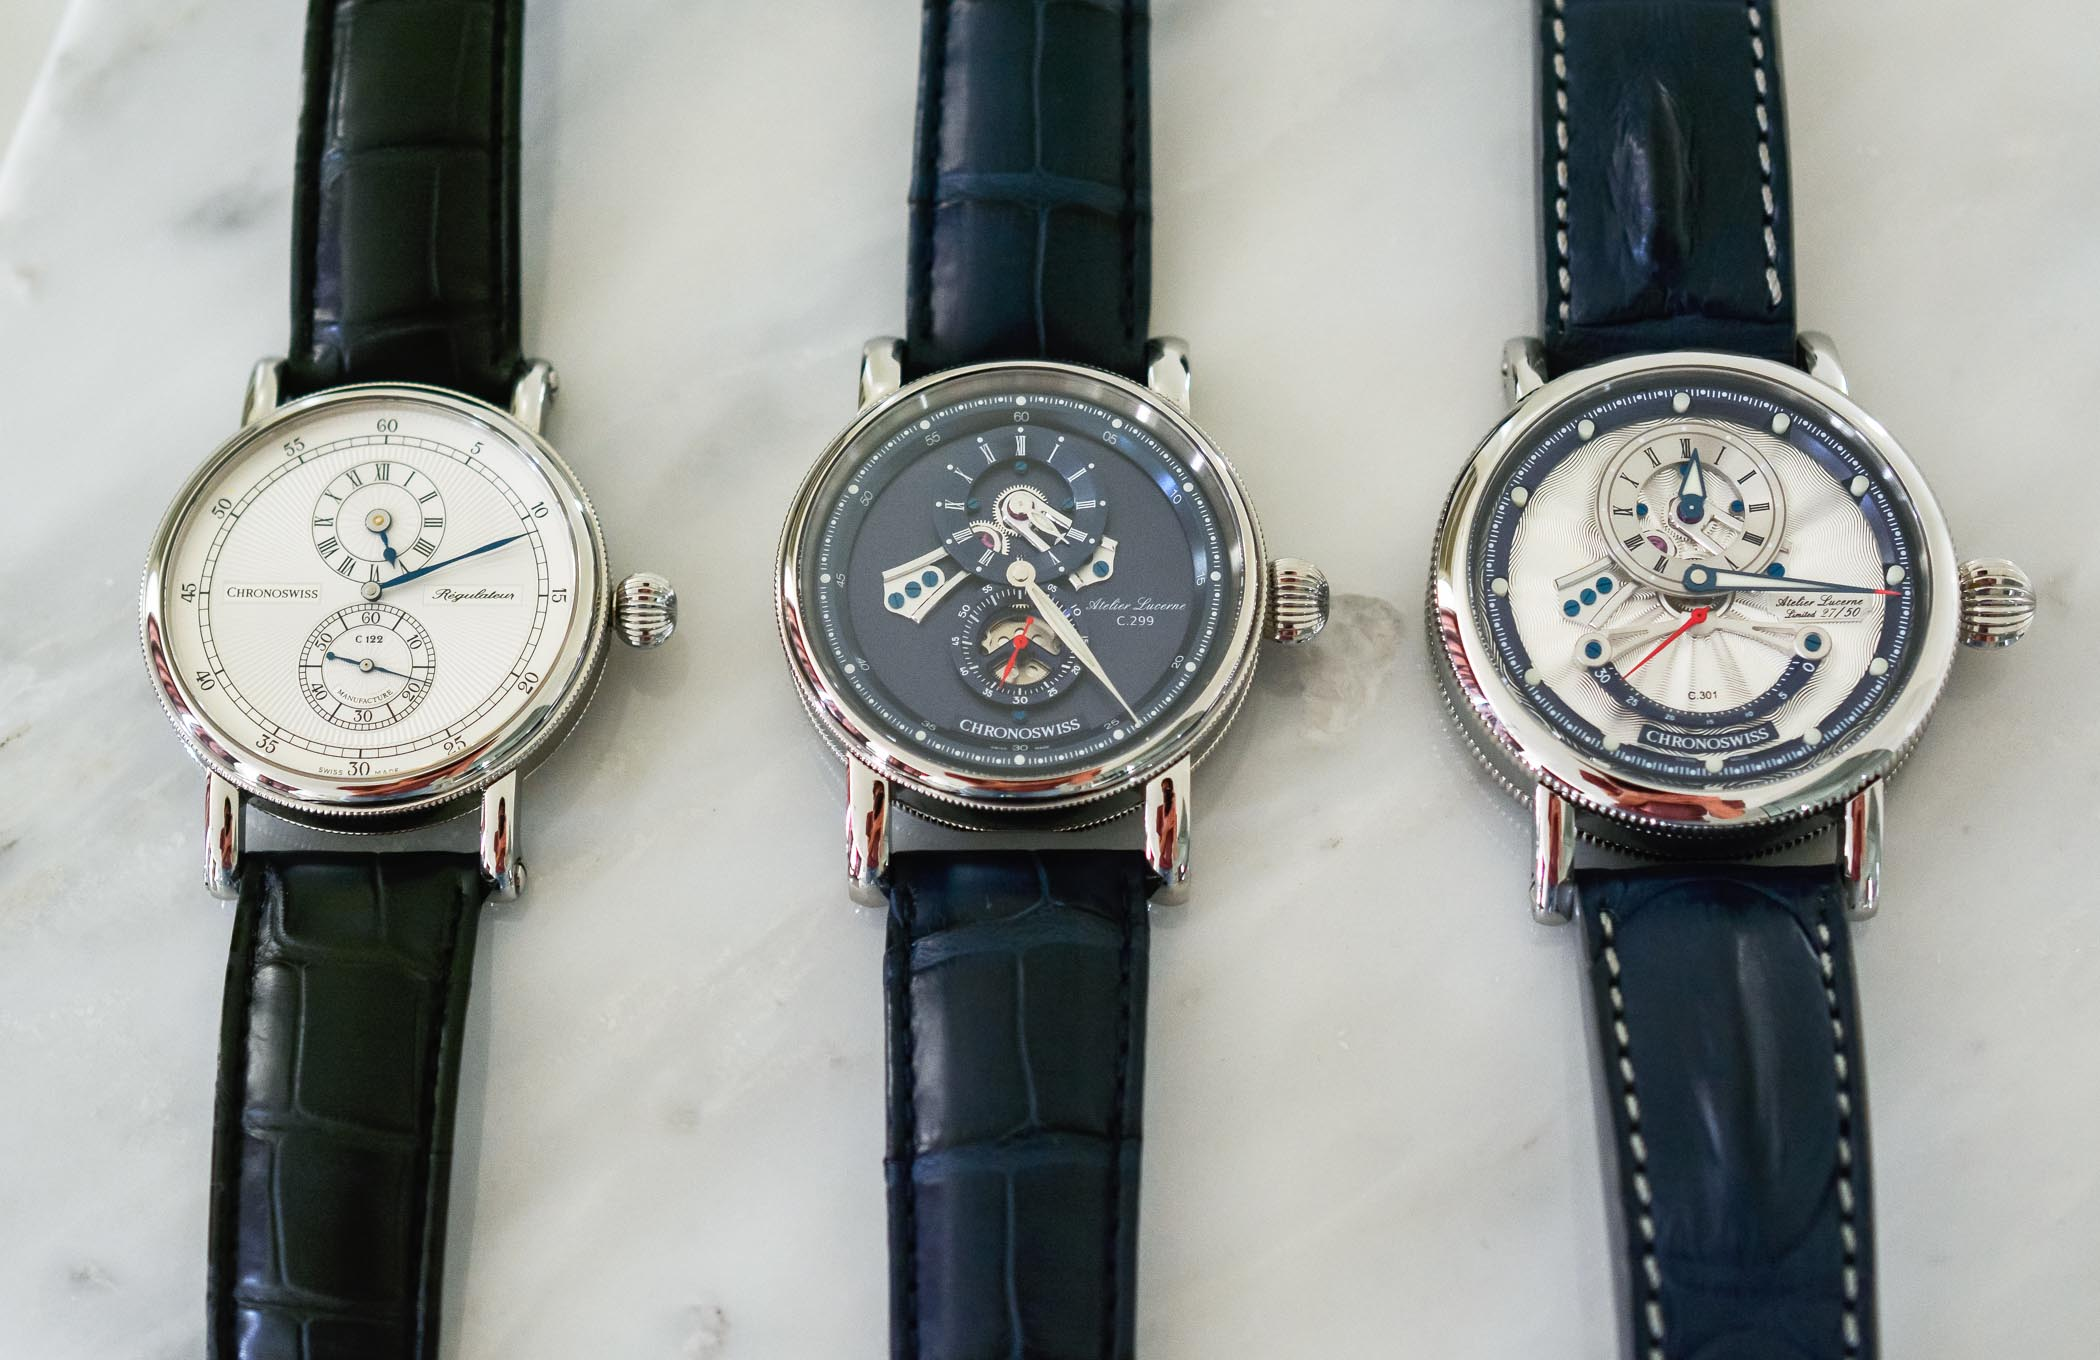 The Evolution of The Regulator Watch by Chronoswiss